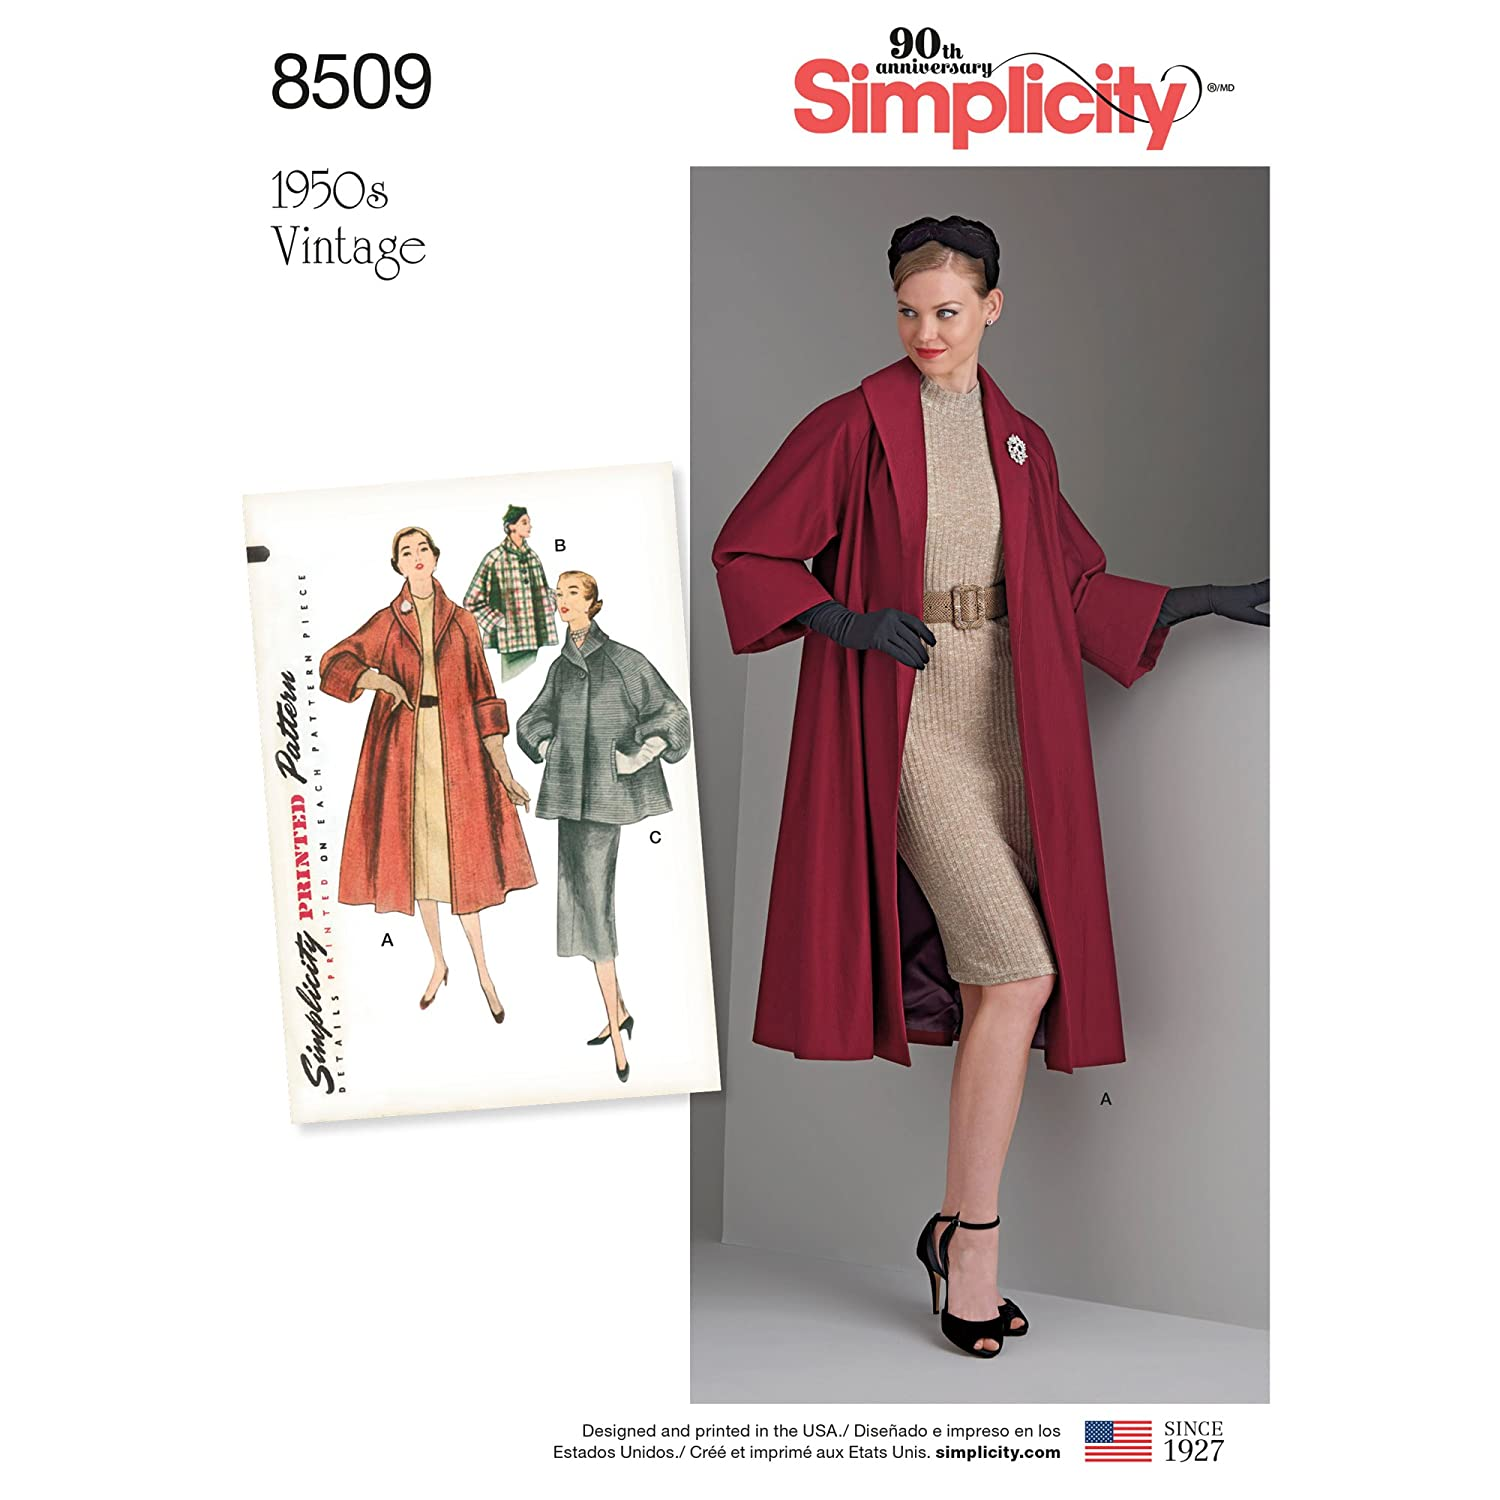 1950s Jackets, Coats, Bolero | Swing, Pin Up, Rockabilly Simplicity Creative Patterns US8509R5 Sewing Tops/Vest/Jkts/Coats R5 (14-16-18-20-22) $10.01 AT vintagedancer.com